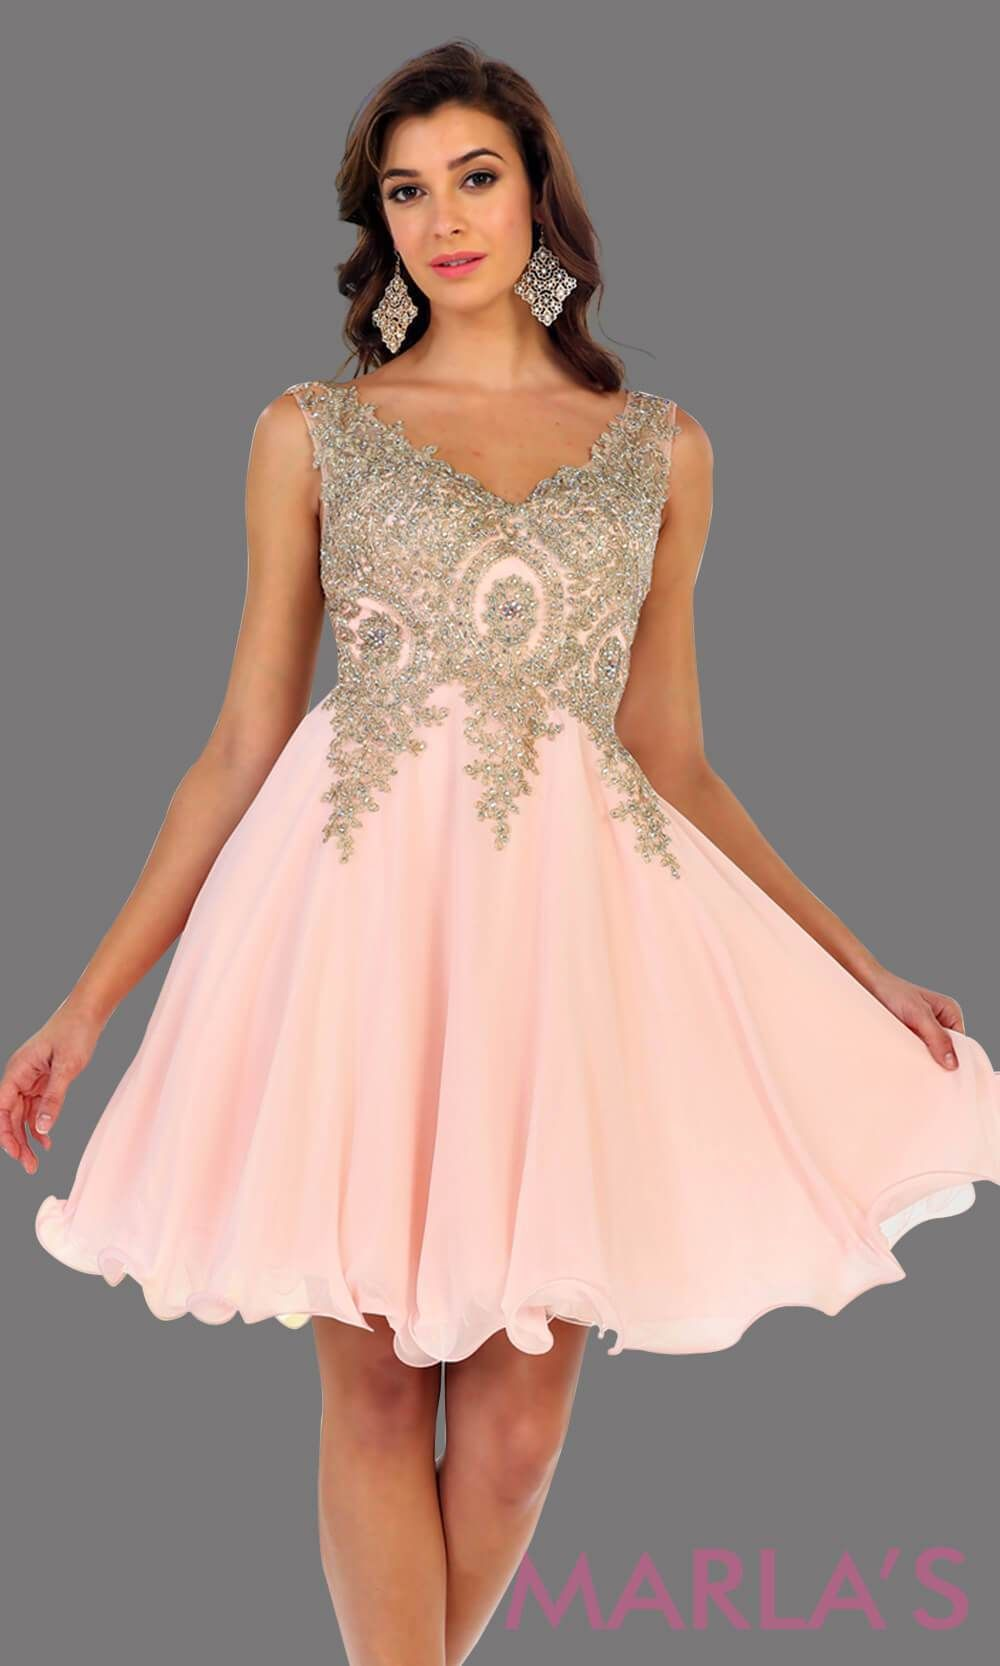 85f4906cb30 Short flowy blush dress with gold lace detail on the bodice. This is a  perfect pink grade 8 graduation dress